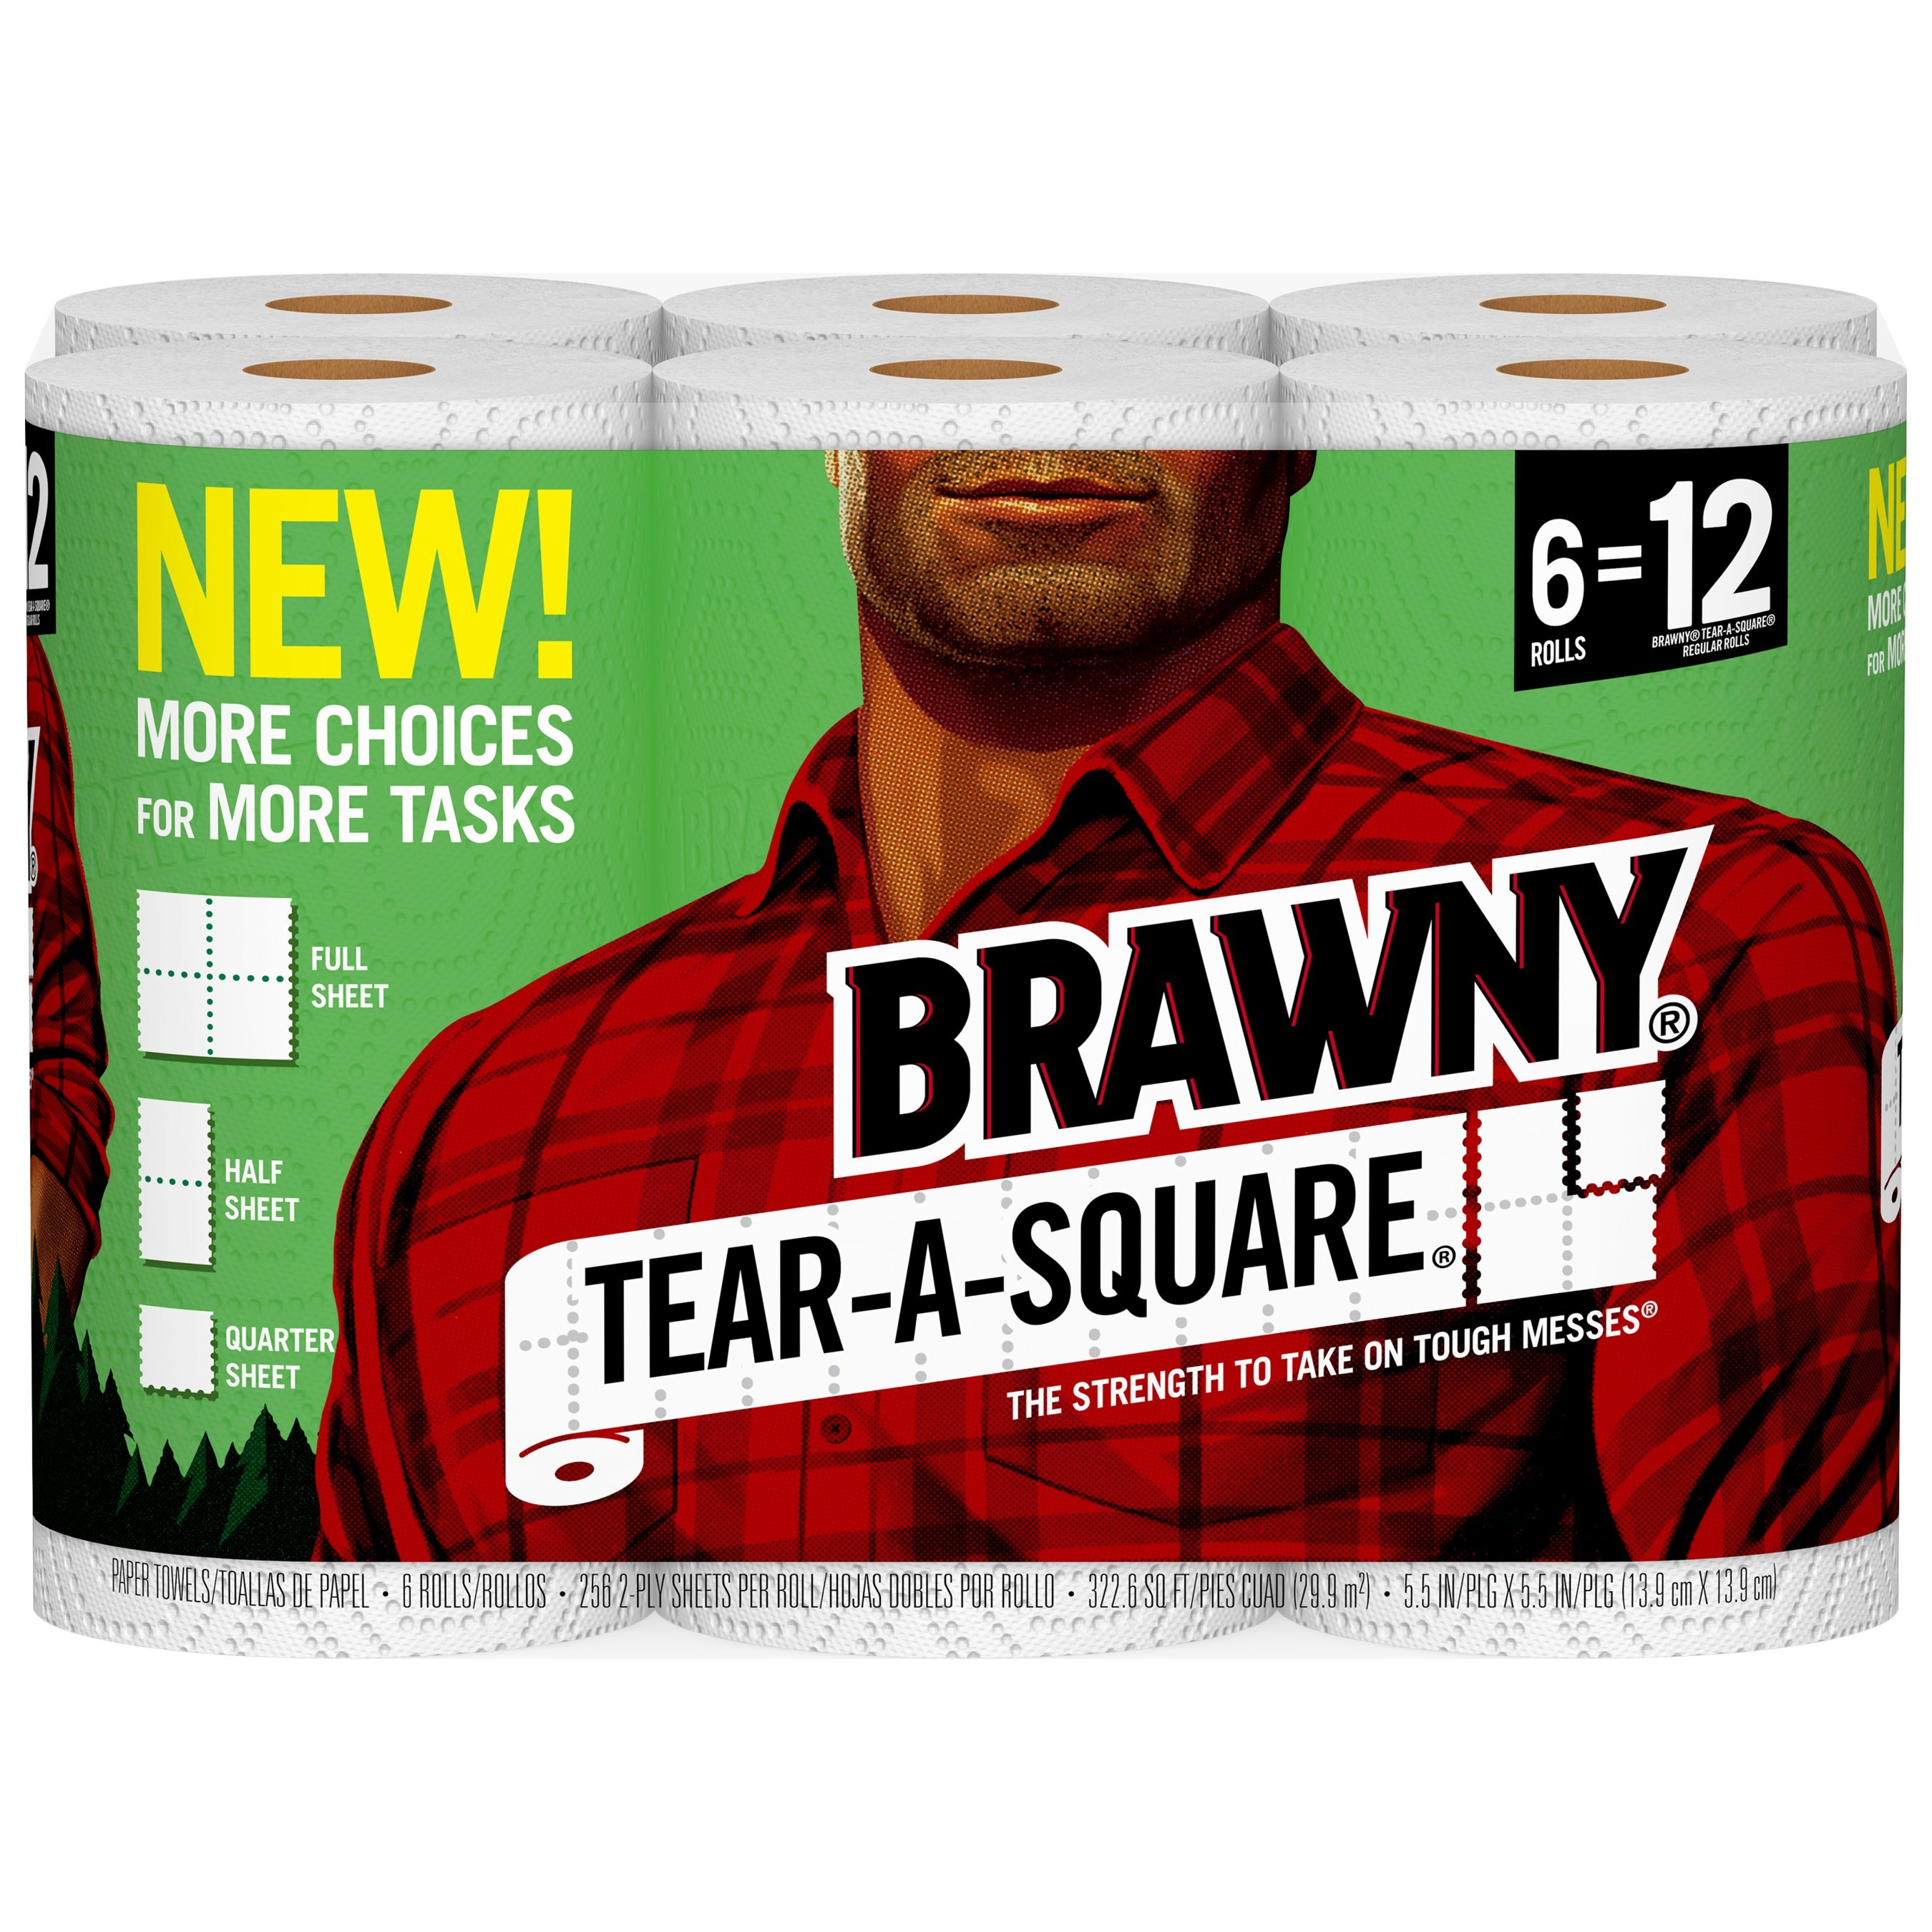 Featuring three sheet sizes on the same roll, Brawny® Tear-A-Square™ paper towels now offers multiple options to choose from--all featuring the same strength, durability and dependability that consumers expect from the Brawny® brand.